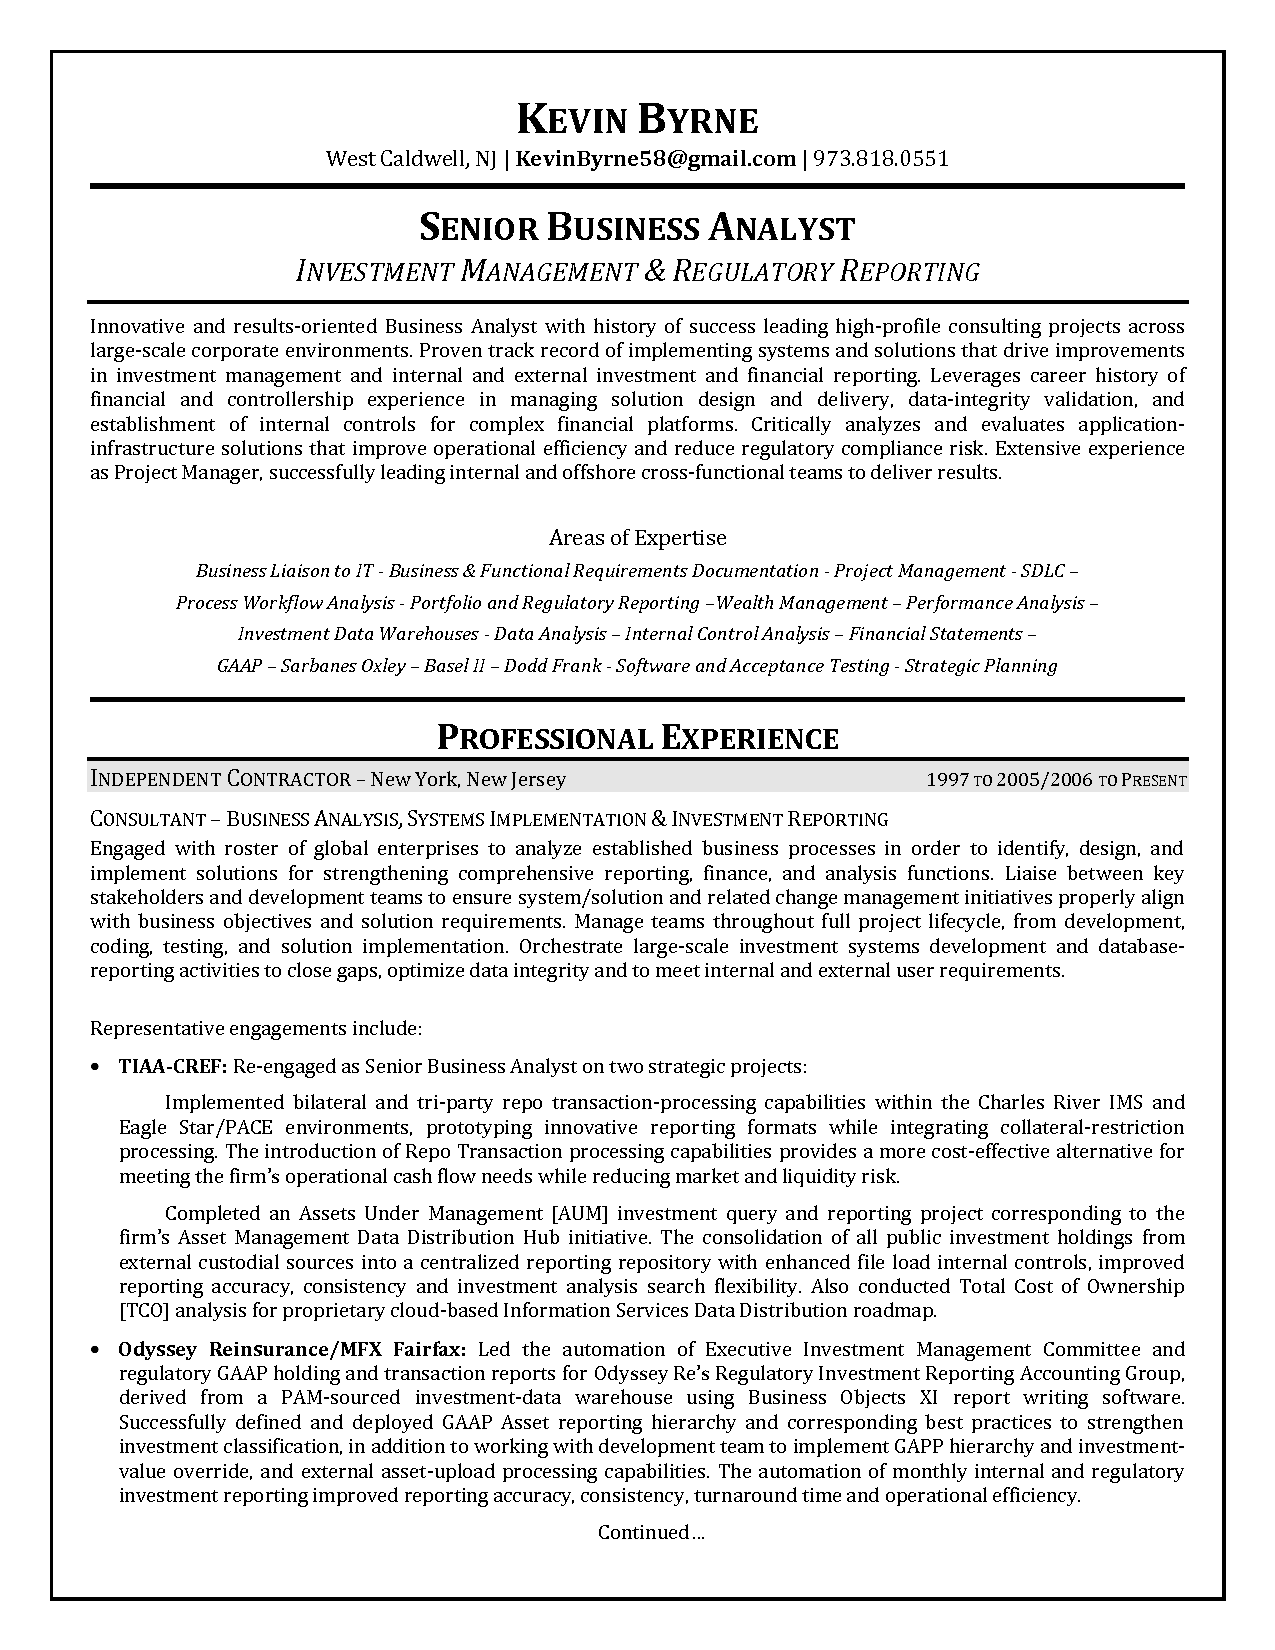 Financial Analysis Report Samples and Business or Systems Analyst Resume Template Premium Resume Samples